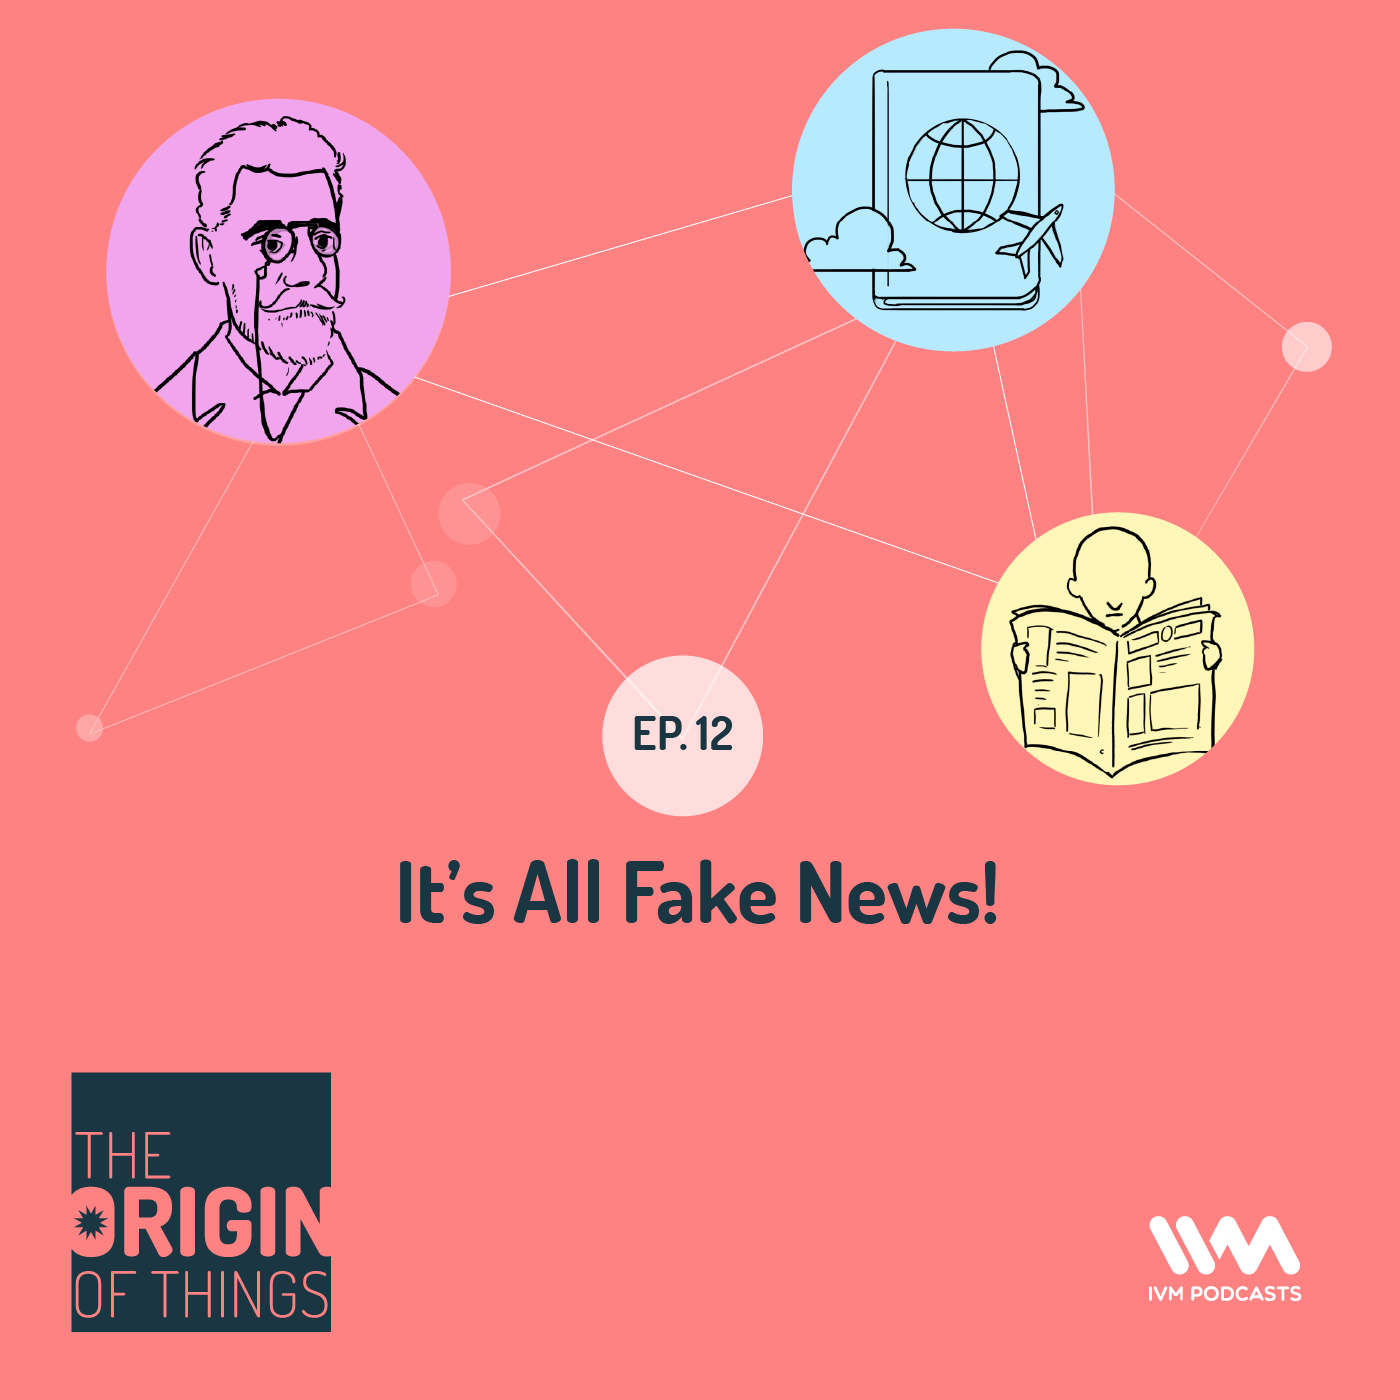 Ep. 12: It's All Fake News!